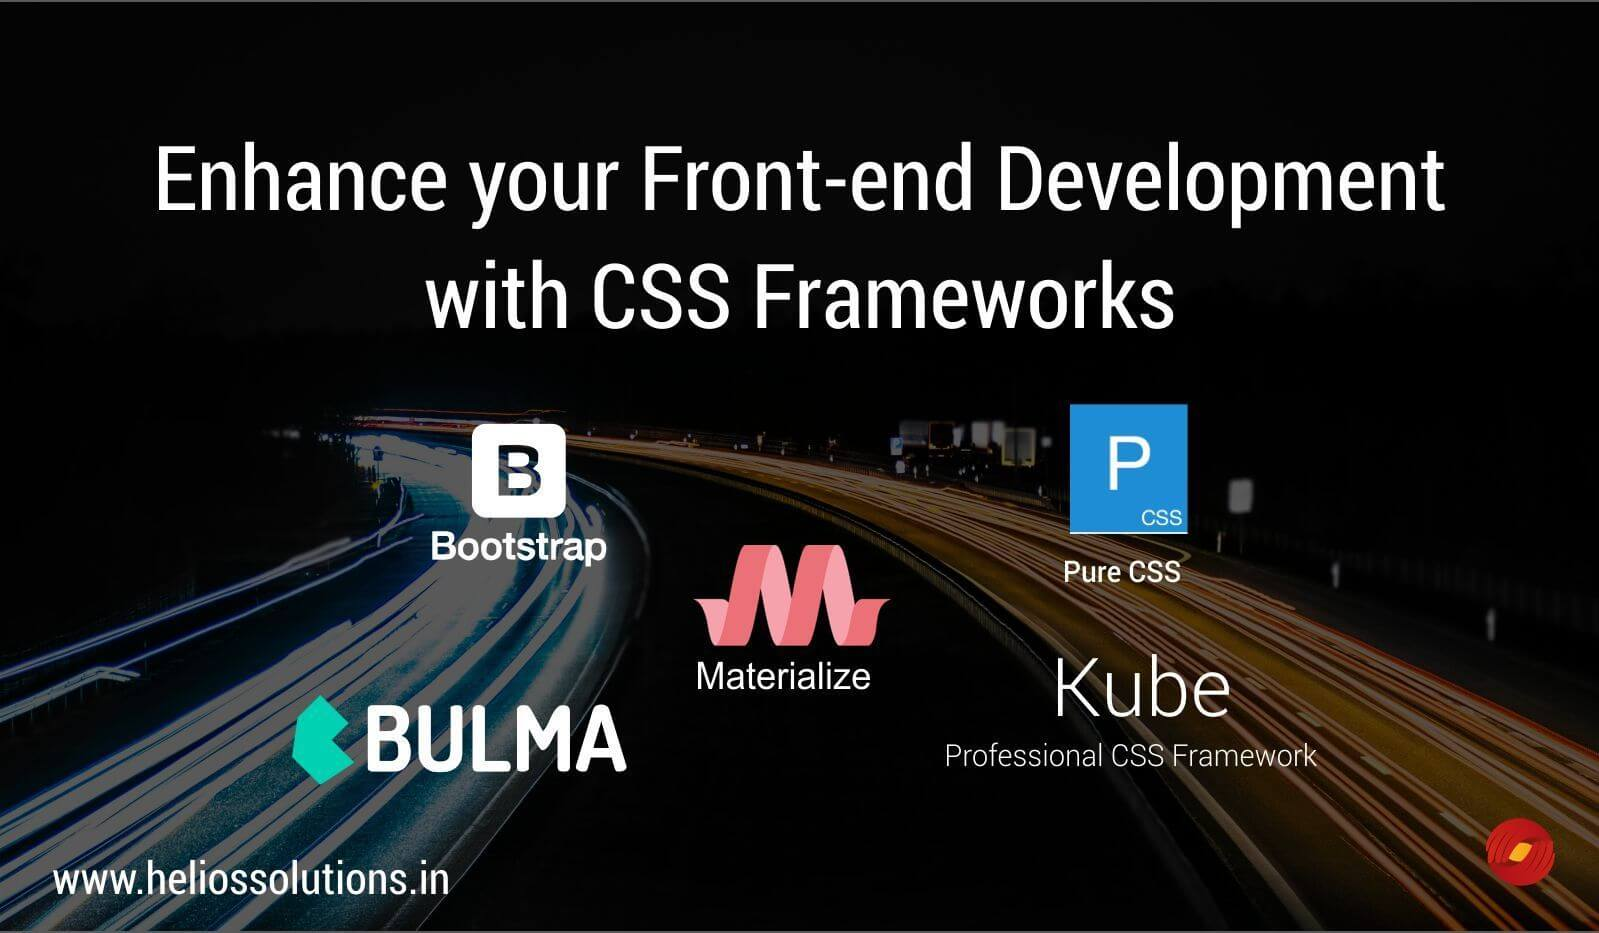 Top 5 CSS Frameworks to Accelerate Your Front-end Development